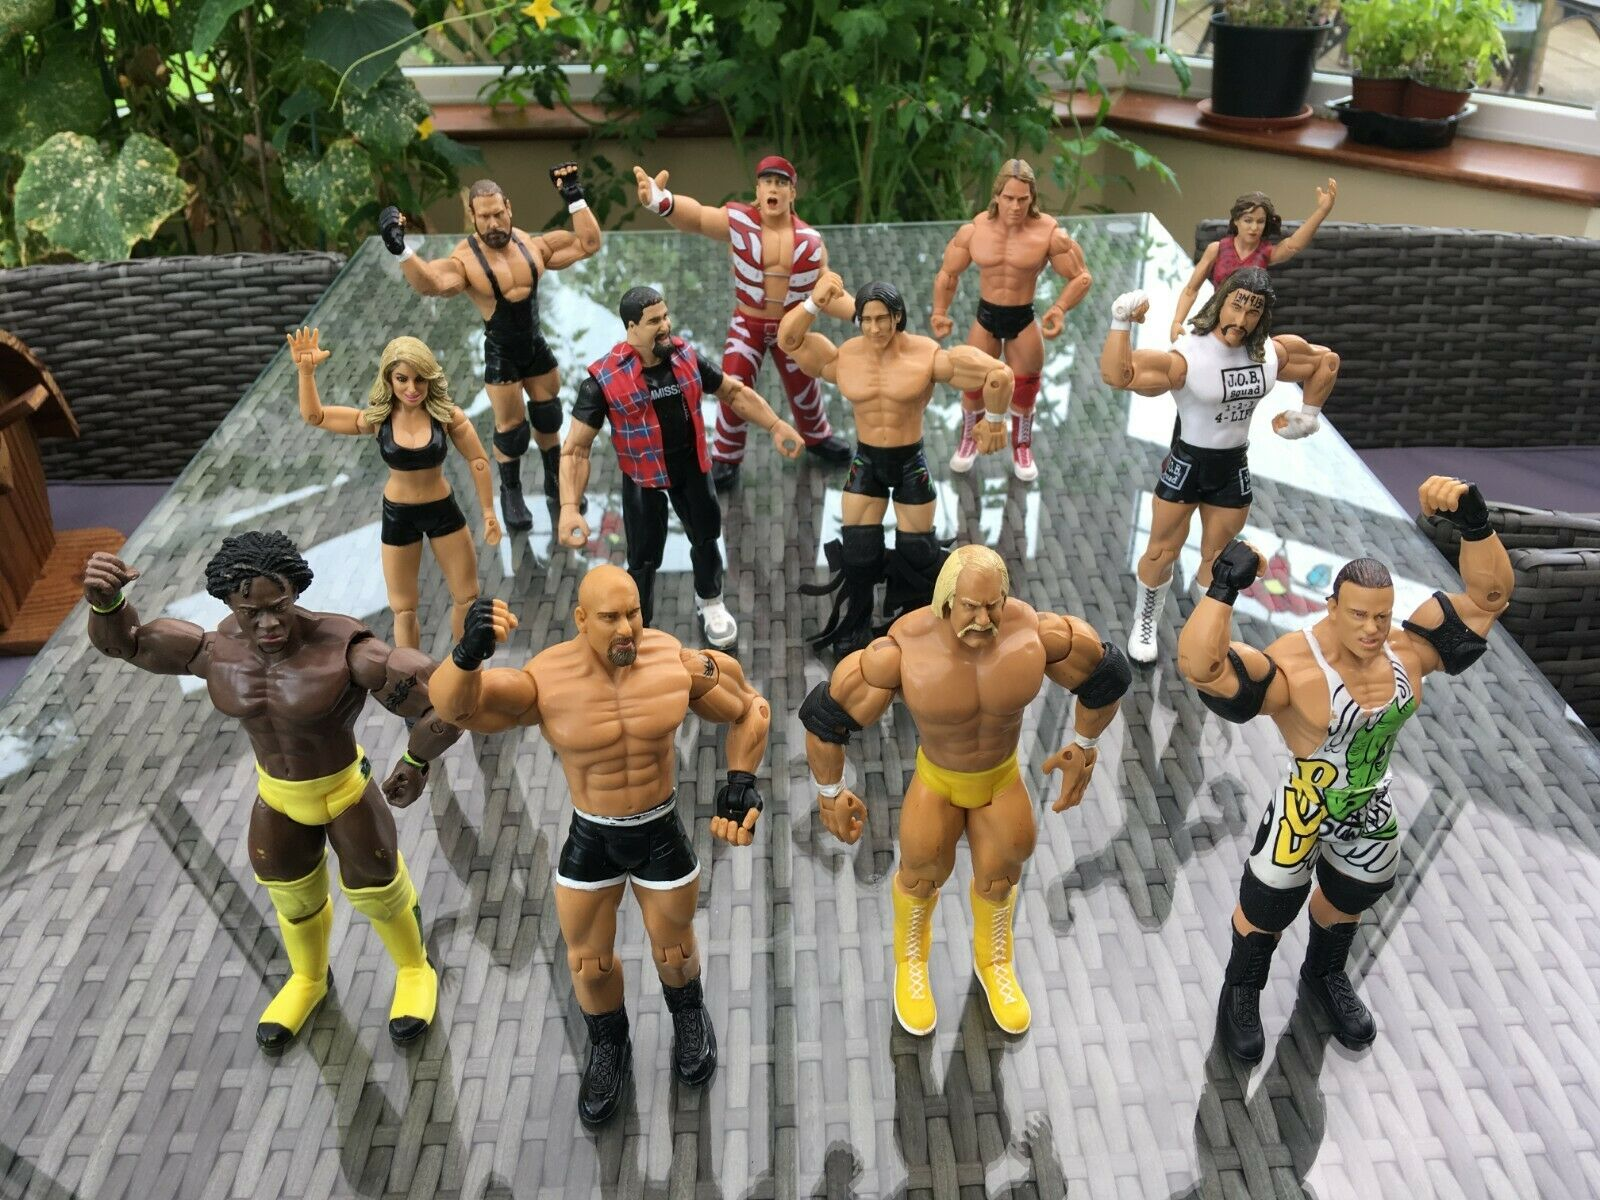 Cheap and Rare WWE WCW TNA ECW Wrestling Figures for Sale - Batch 2